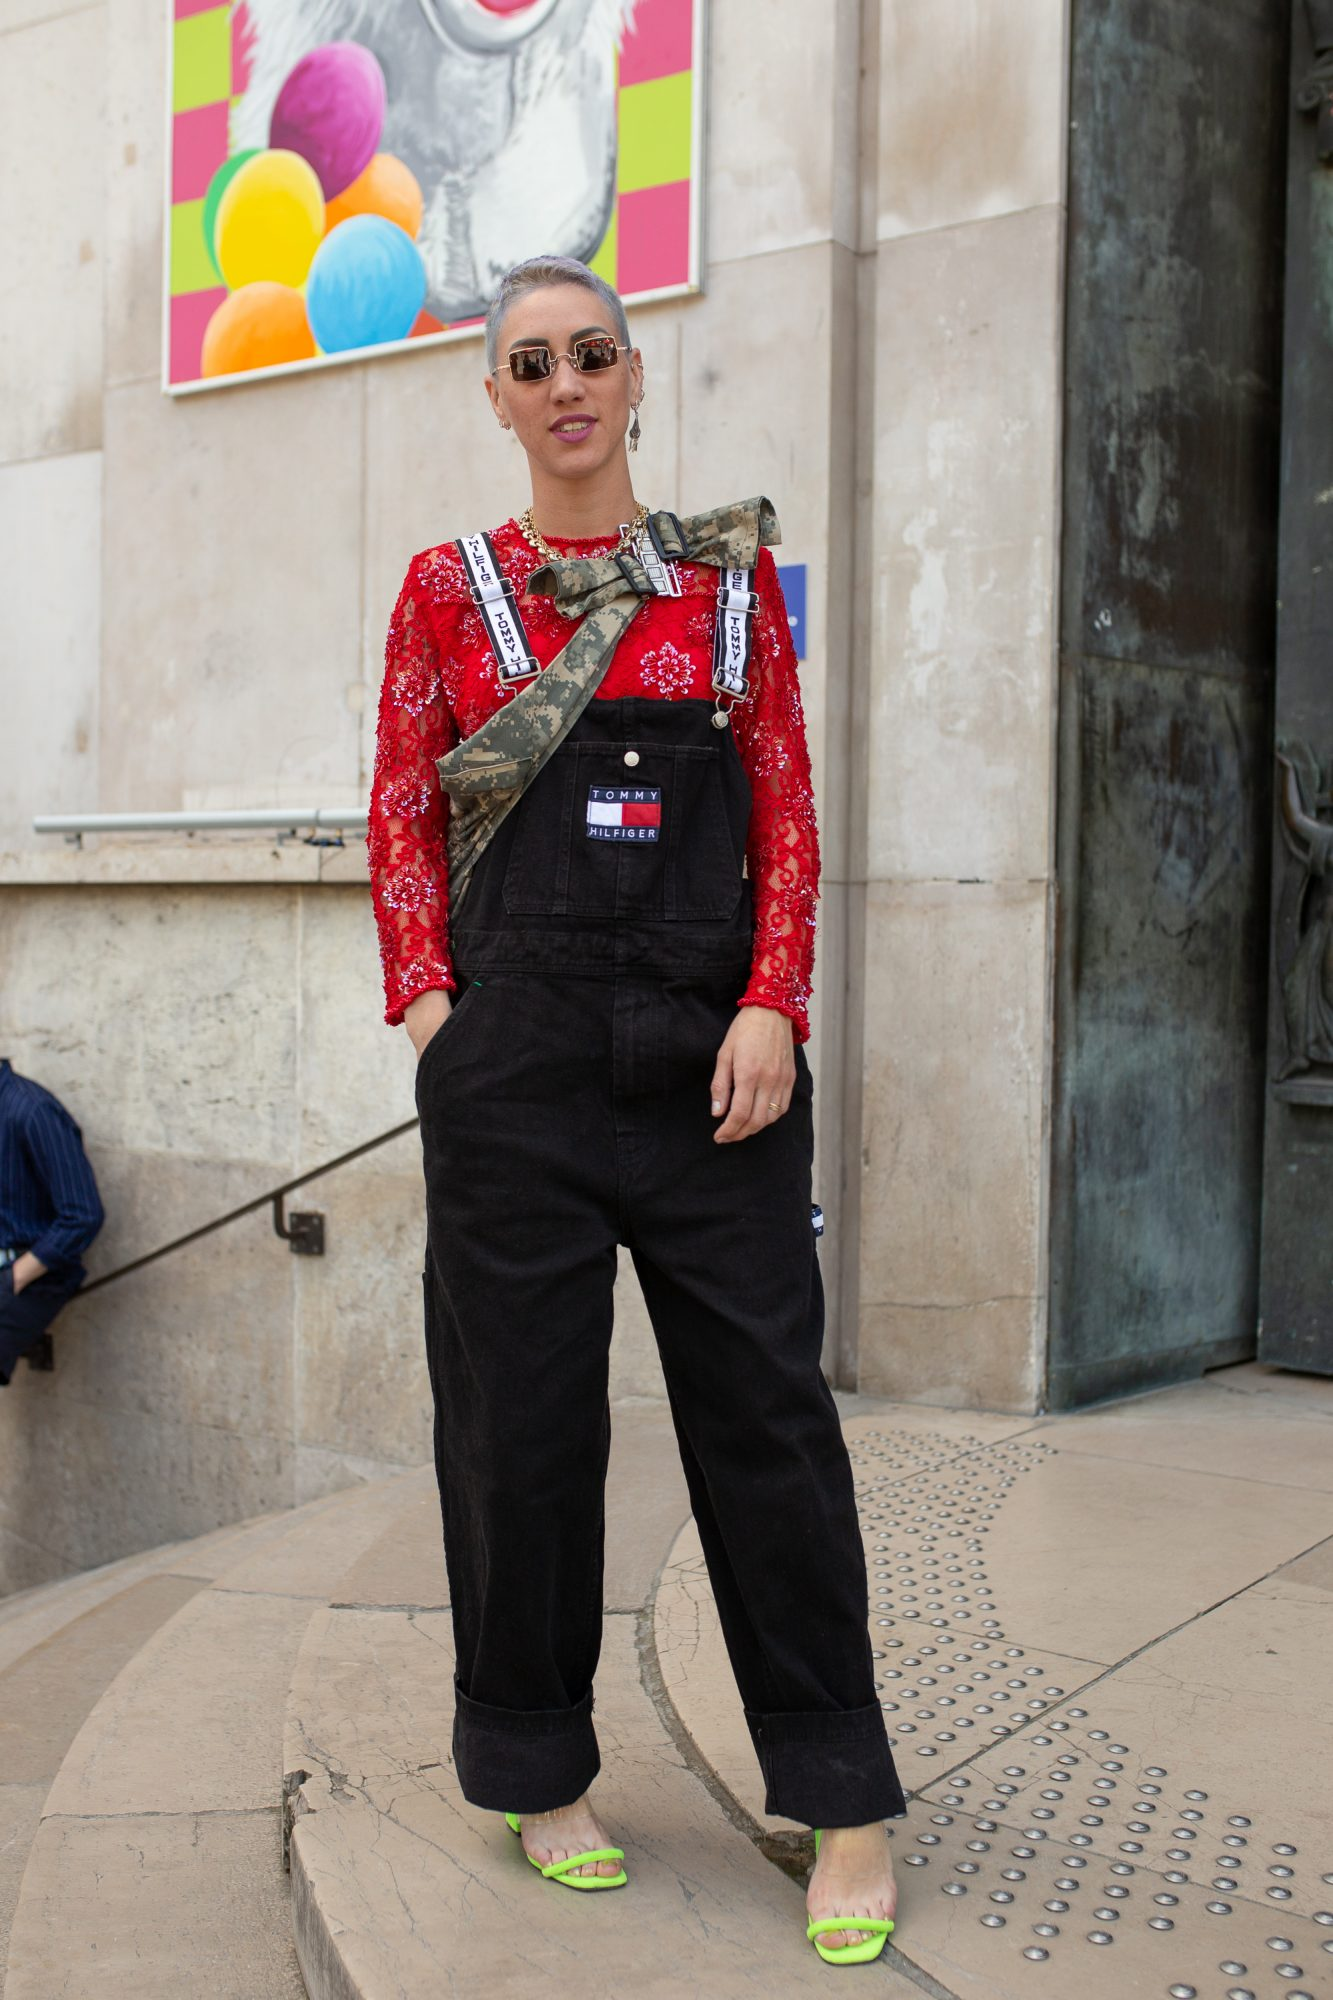 How to Wear Overalls, Overalls With Heels